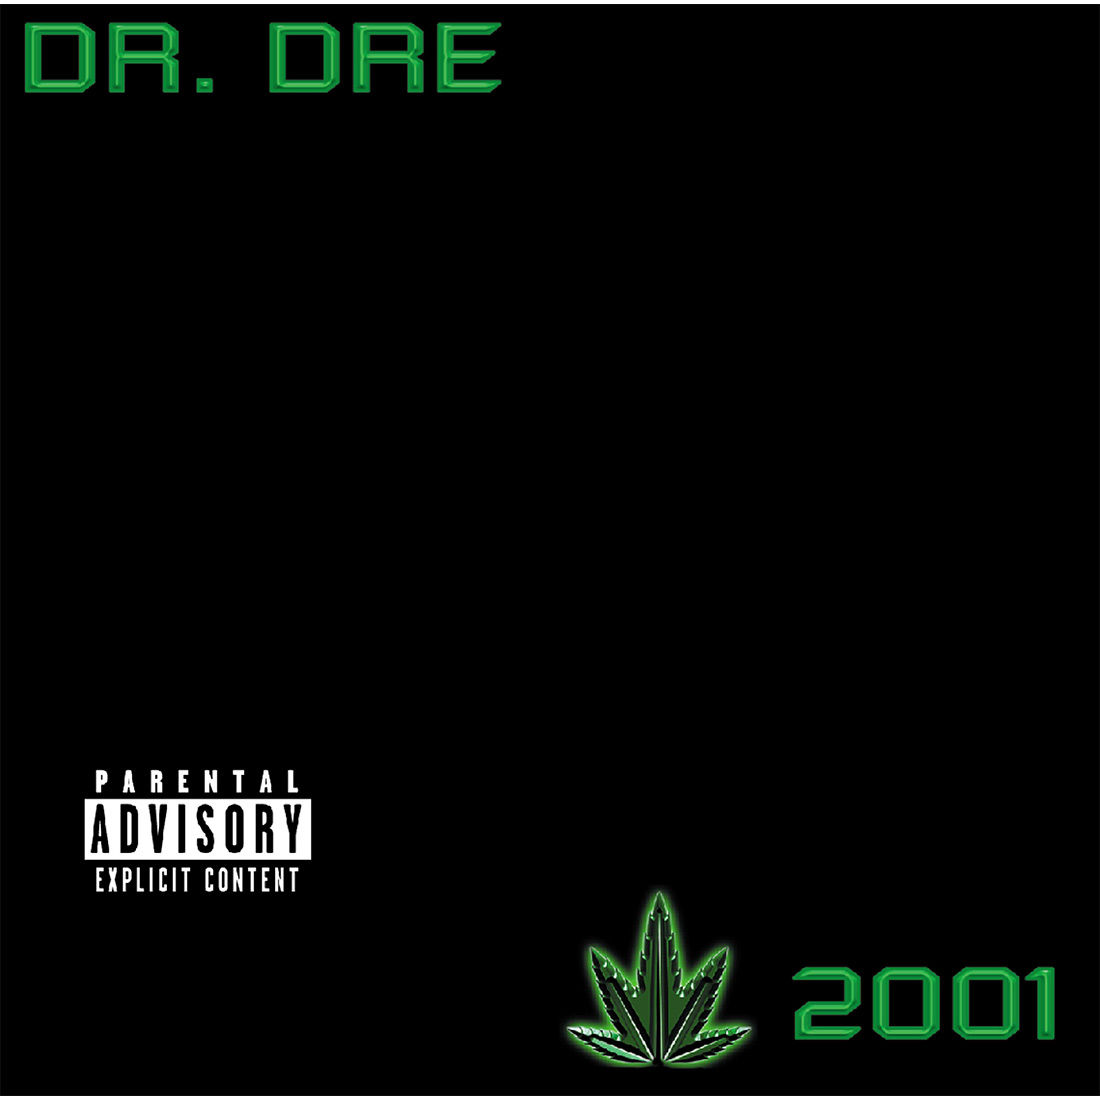 Dr. Dre Chronic 2001 Released 20 Years Ago Today